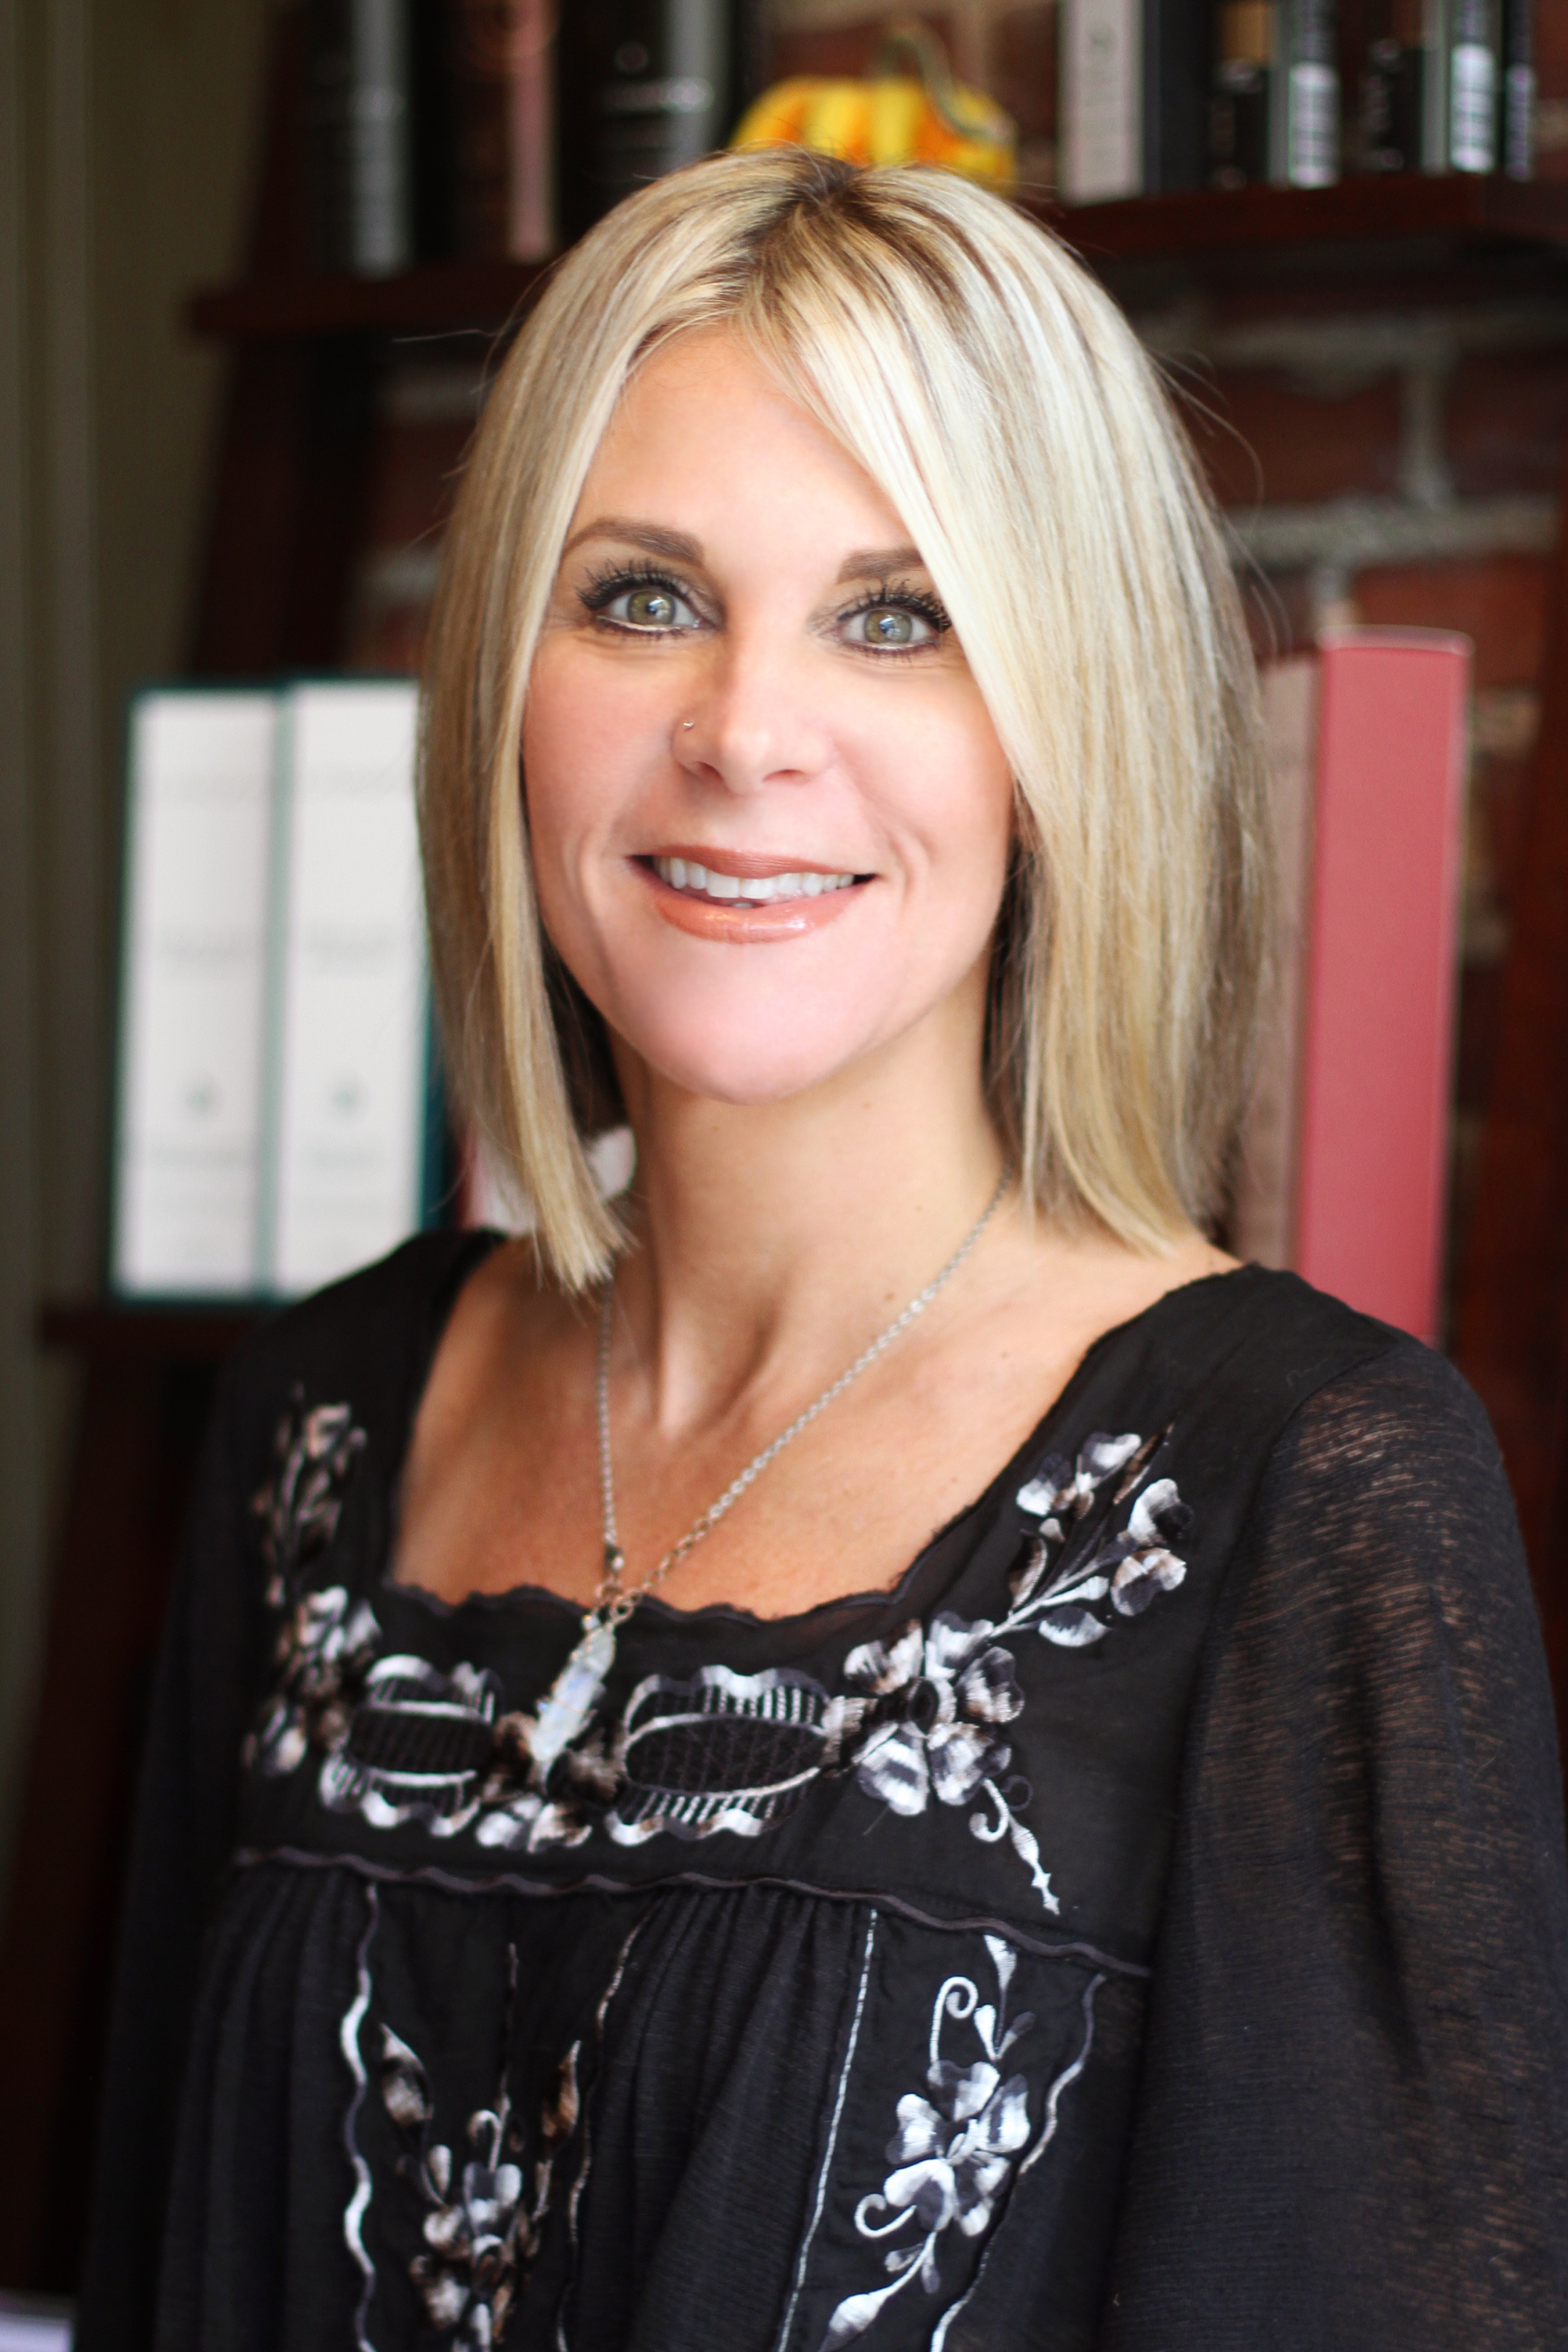 """Sonja Conant - Sonja is a high energy hairstylist with an undeniable passion for her clients. Her signature looks through cut, color and style have seamless transitions, soft edges, incredible longevity and a decidedly effortless aesthetic. She embodies a more traditional approach to hair styling and believes in the complete clientele experience- starting with a thorough consultation where she carefully listens to your """"hair challenges"""" and """"hair goals"""" to properly guide you to realistic results. She believes that everyone is unique, and will create a customized look that will enhance your best features and fit your lifestyle. Sonja has been the owner of Esse in York for over 25 years. She has great pride in the reputation Esse Studio has as a high end salon in this quaint location."""